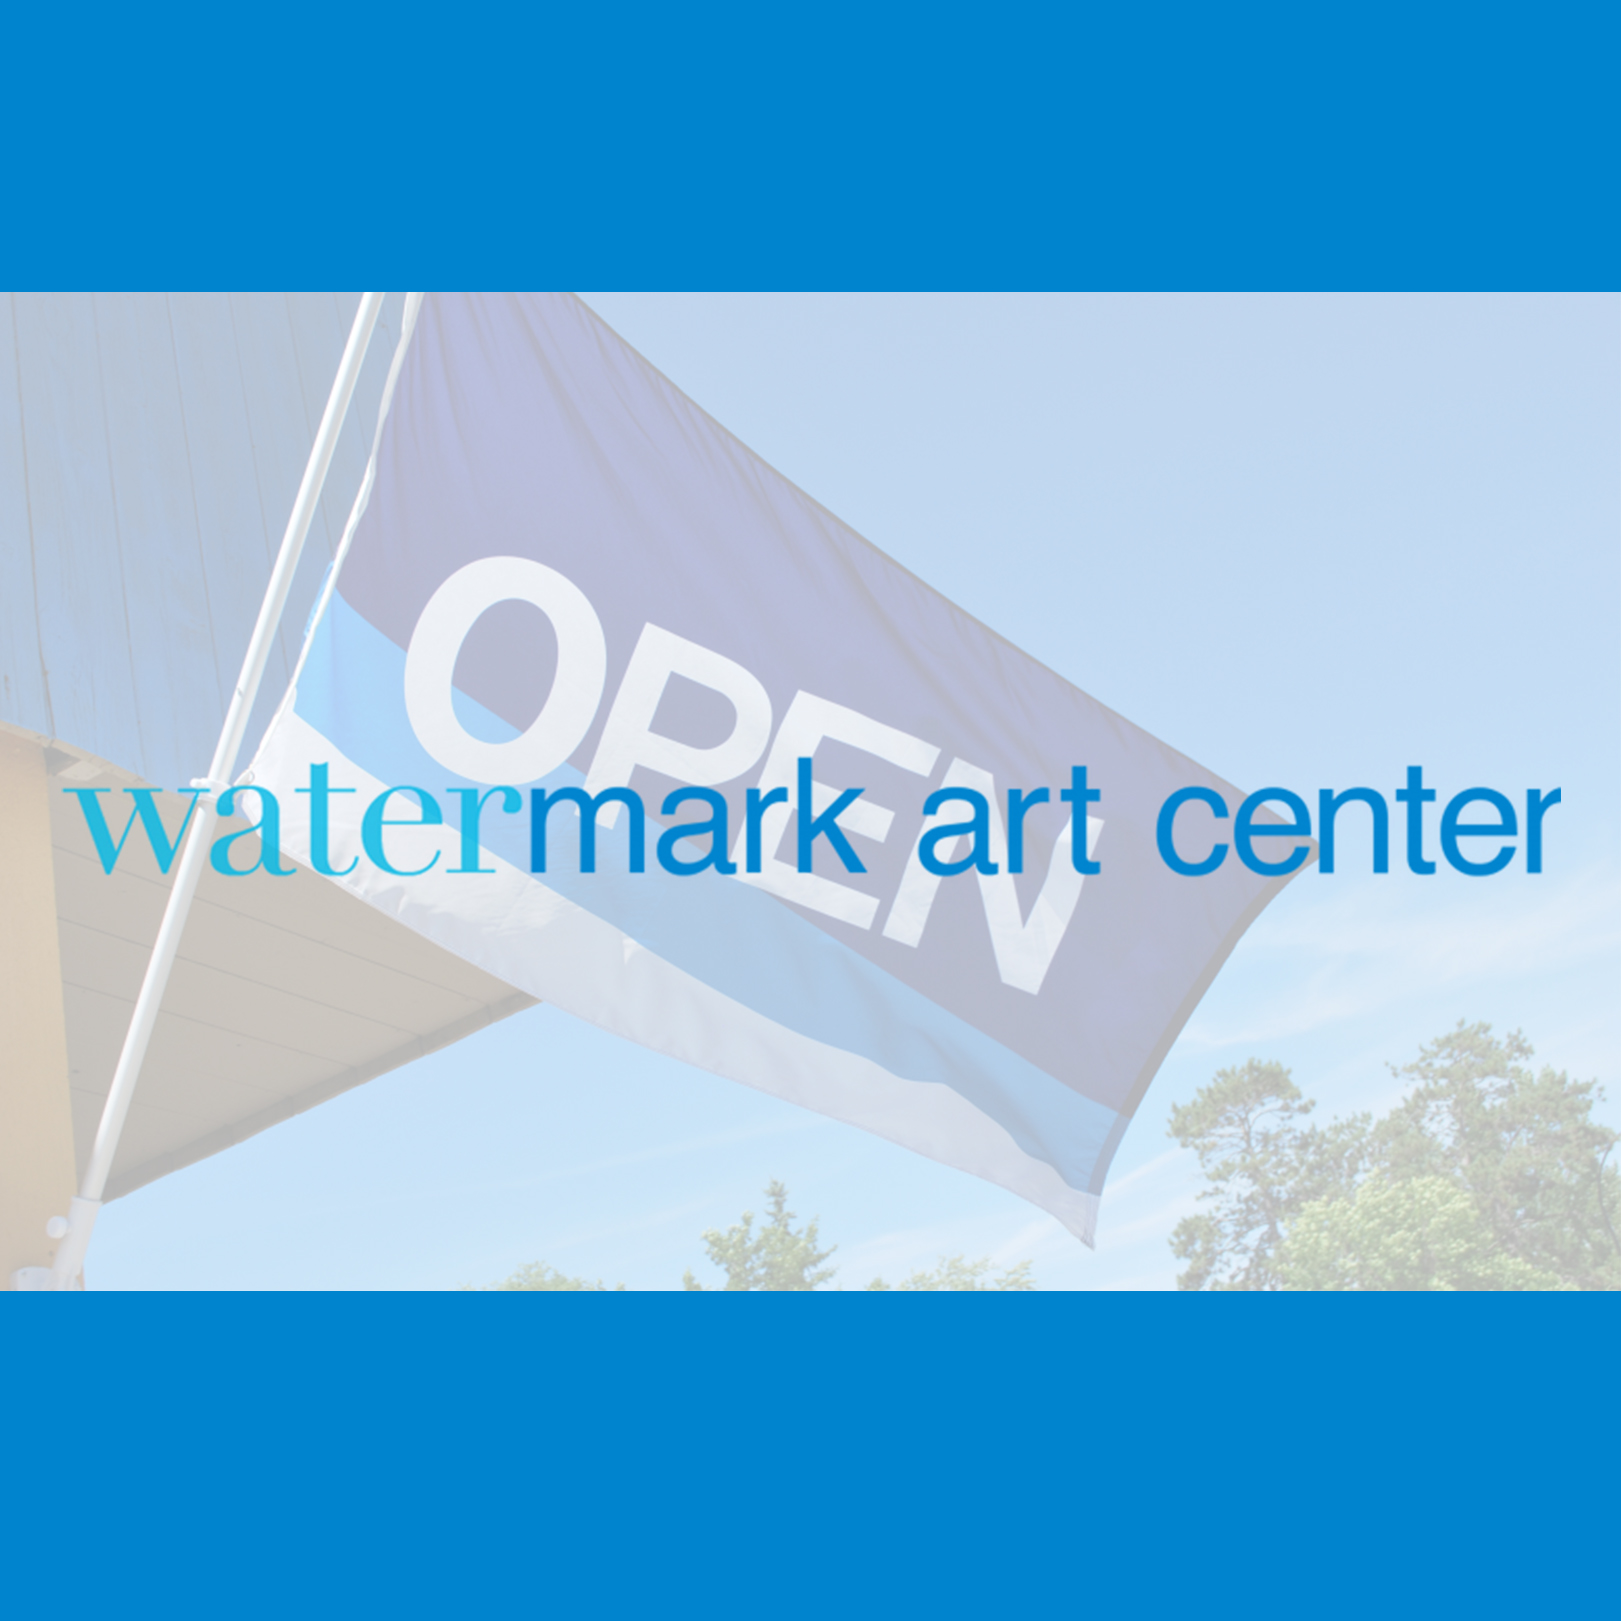 Watermark Art Center Grant Development